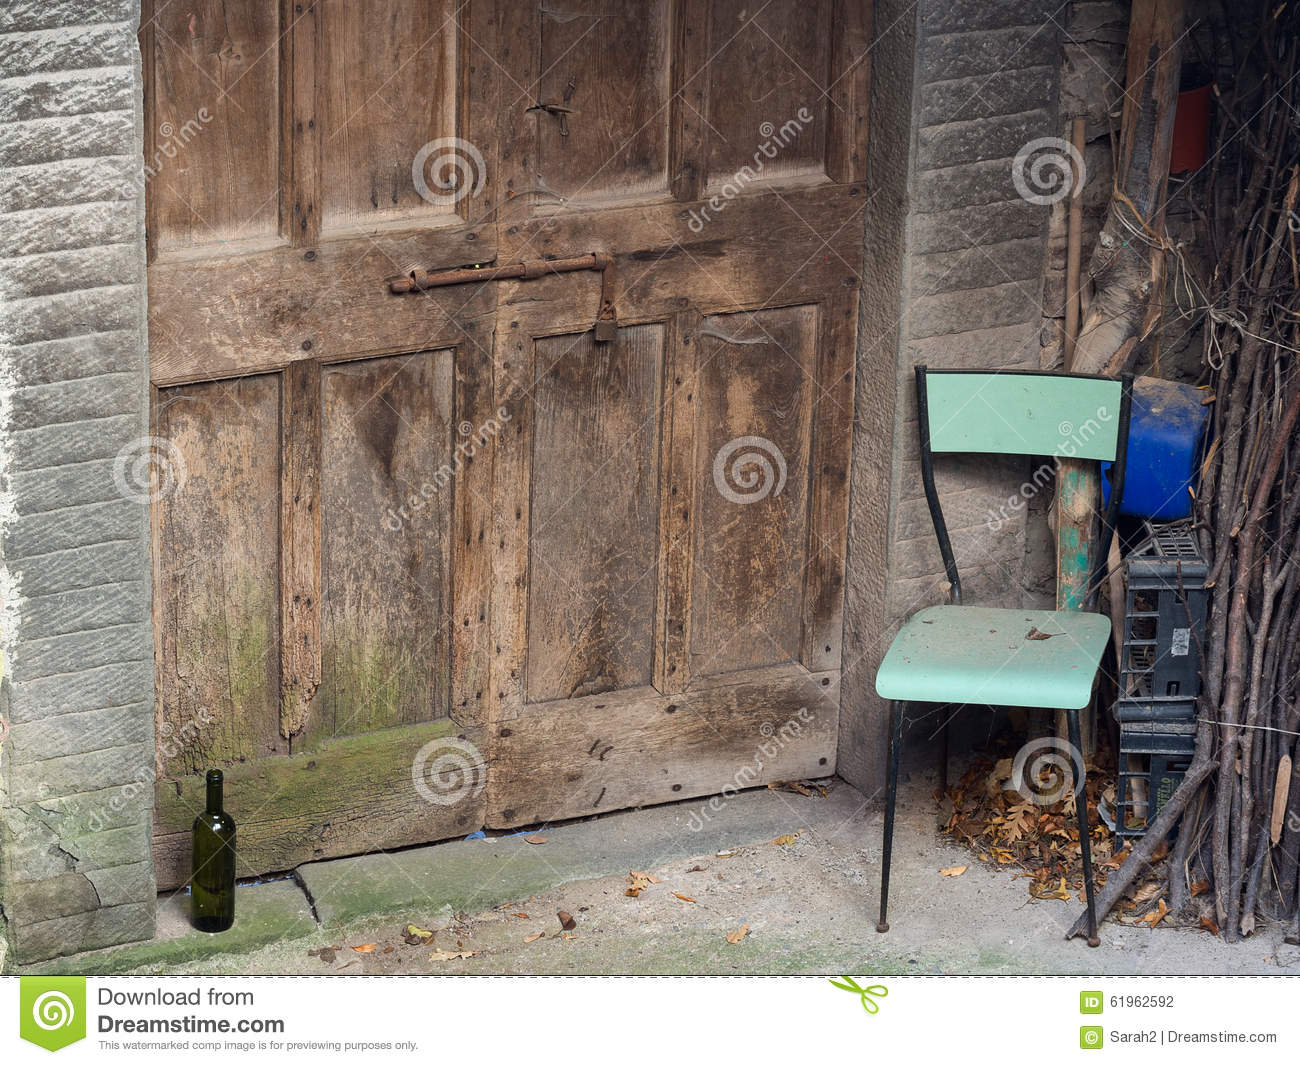 Abandoned village doorway with chair and wine bottle. Poignant.